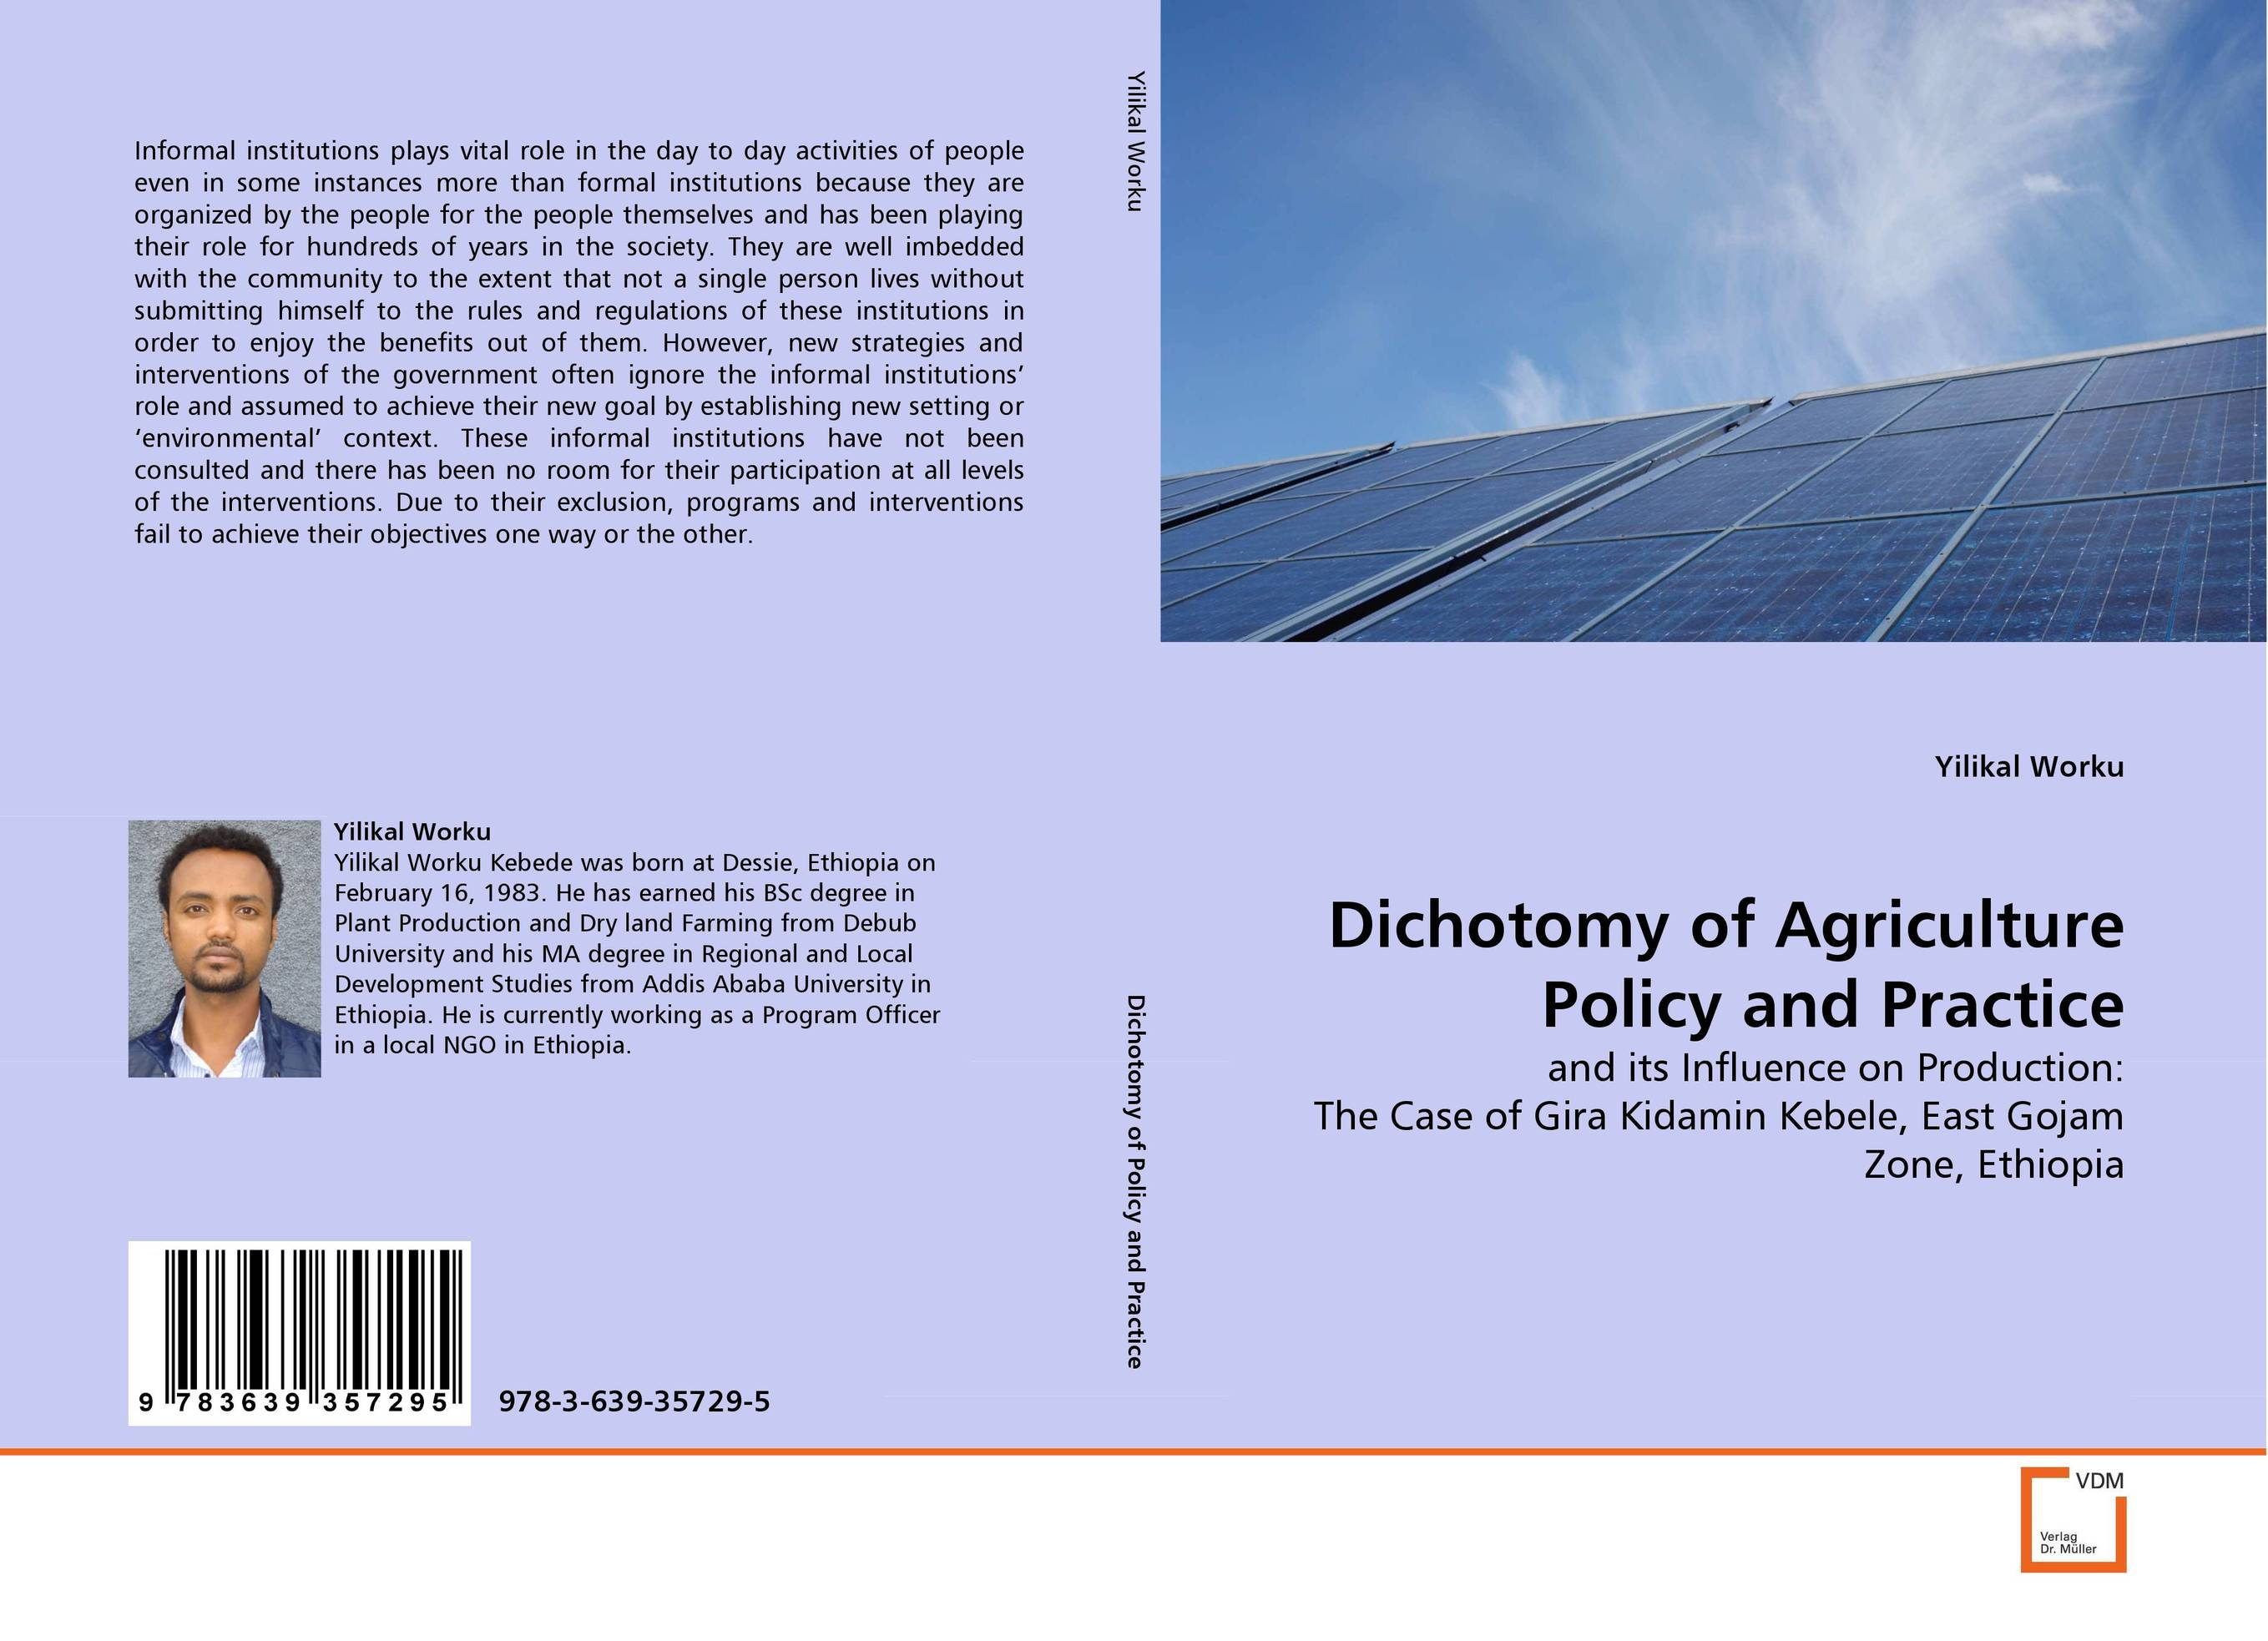 Dichotomy of Agriculture Policy and Practice